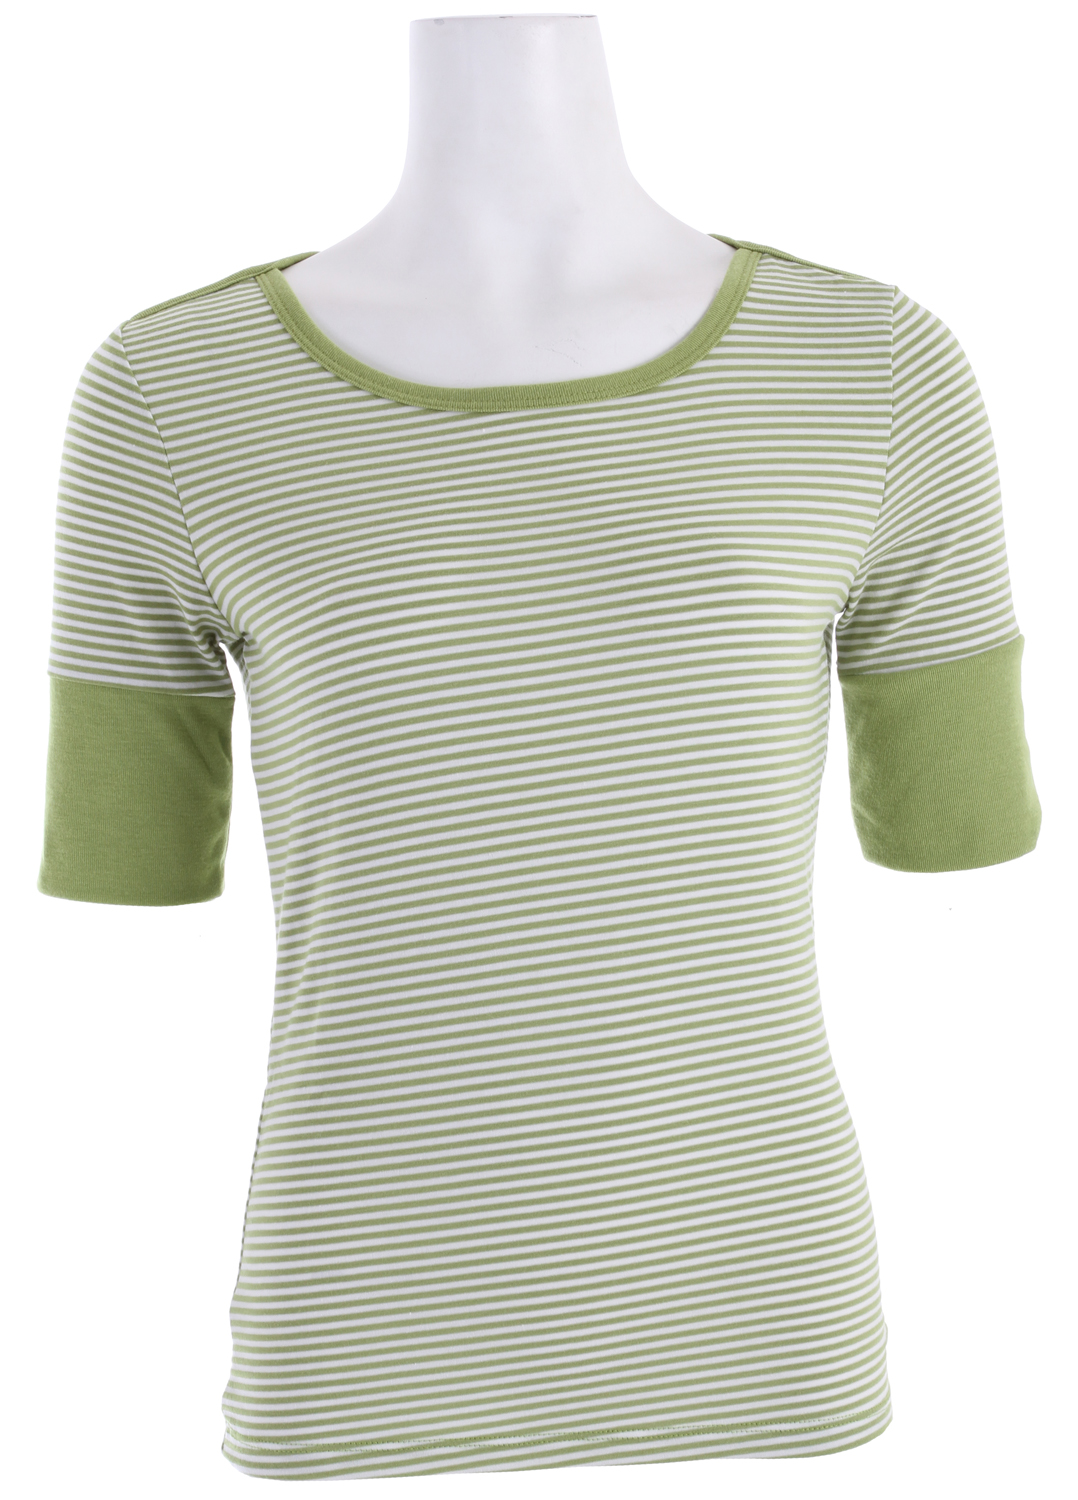 Key Features of the Prana Gina Shirt: Vibrant, garment dyed stripe tee Wide rib cuff finishes the cafe length sleeve Rib binding at neckline and across shoulder White stripes on all colorways - $38.95